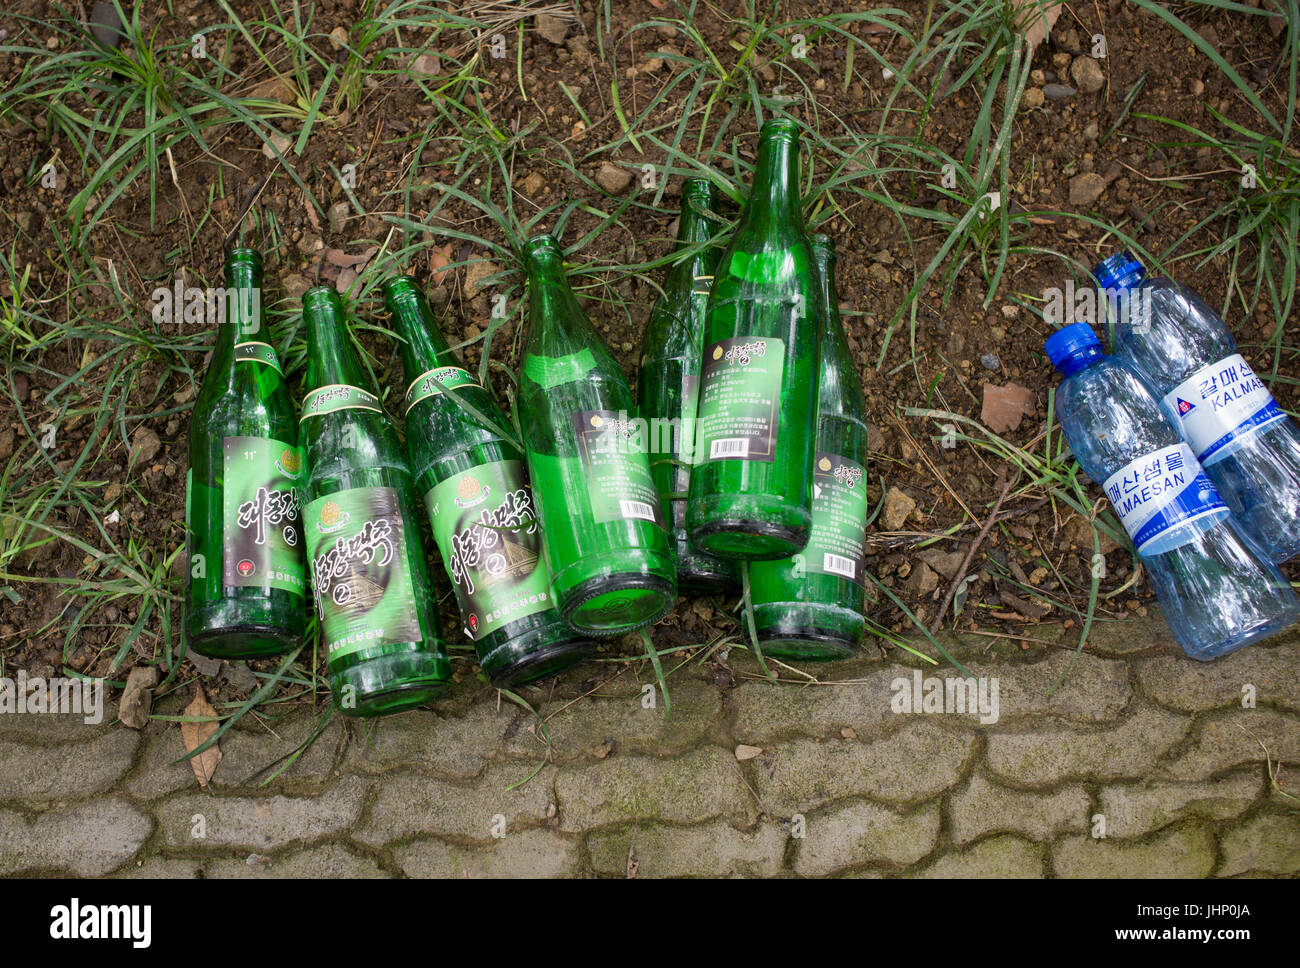 Empty Korean glass beer- and plastic water bottles lying on earth next to block-paved path. Pyongyang, DPRK / North - Stock Image